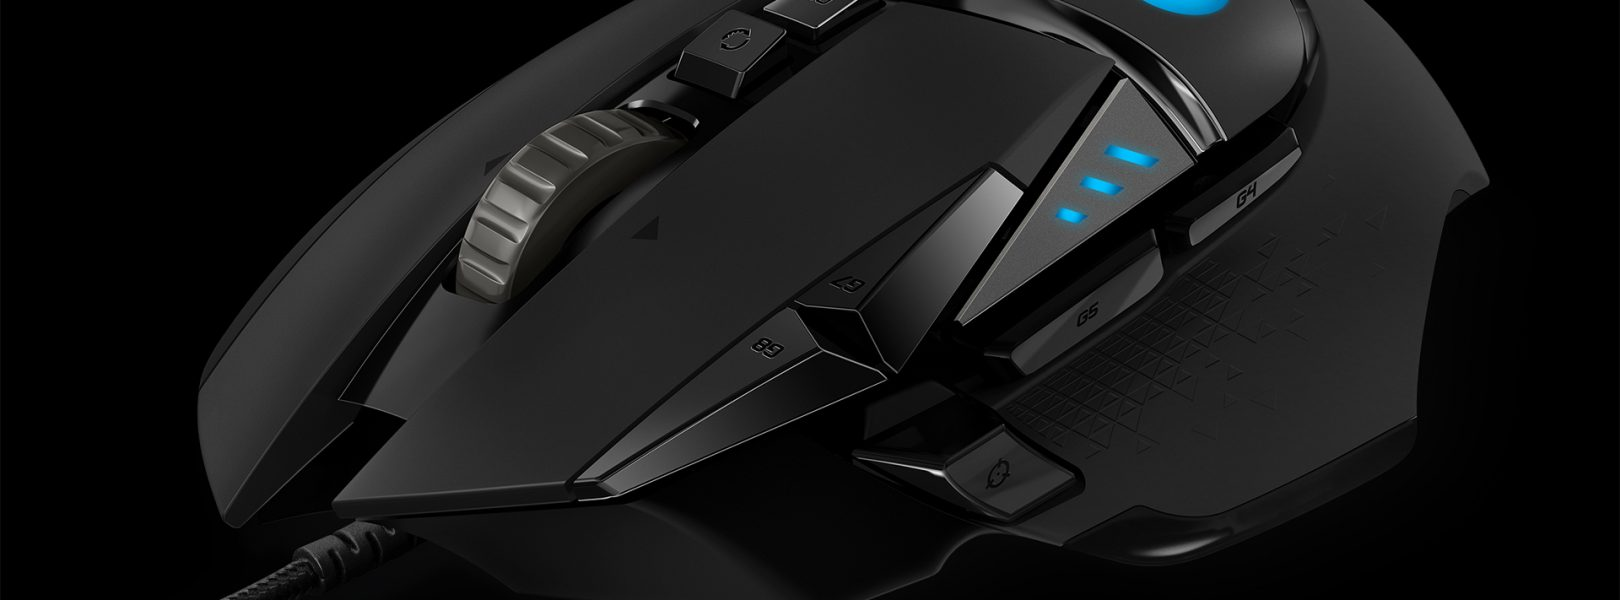 Logitech Capsule Computers G Pro Hero Gaming Mouse Announces Update To The Popular G502